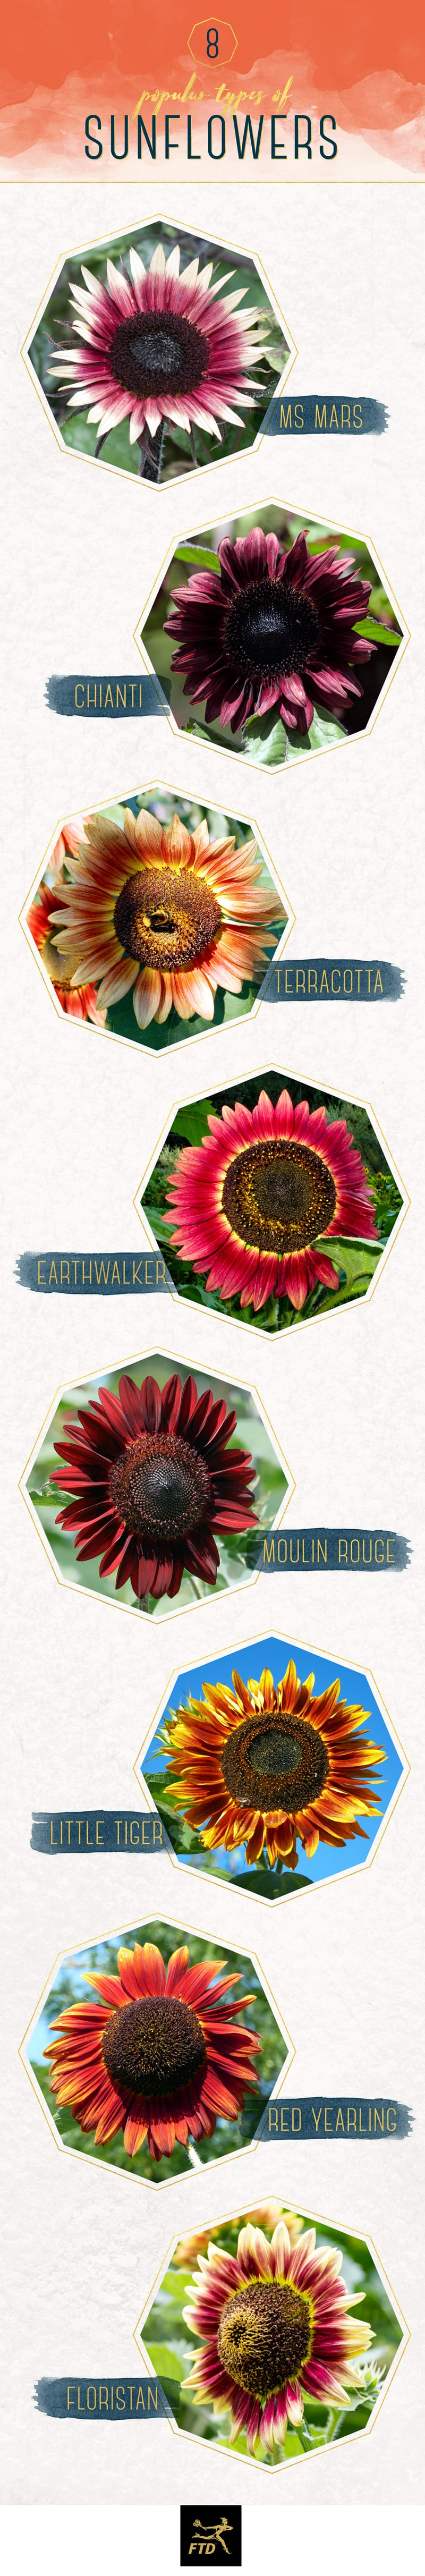 Because there are so many different types of colored sunflowers, FTD has created a visual guide to the eight most popular colored sunflowers.